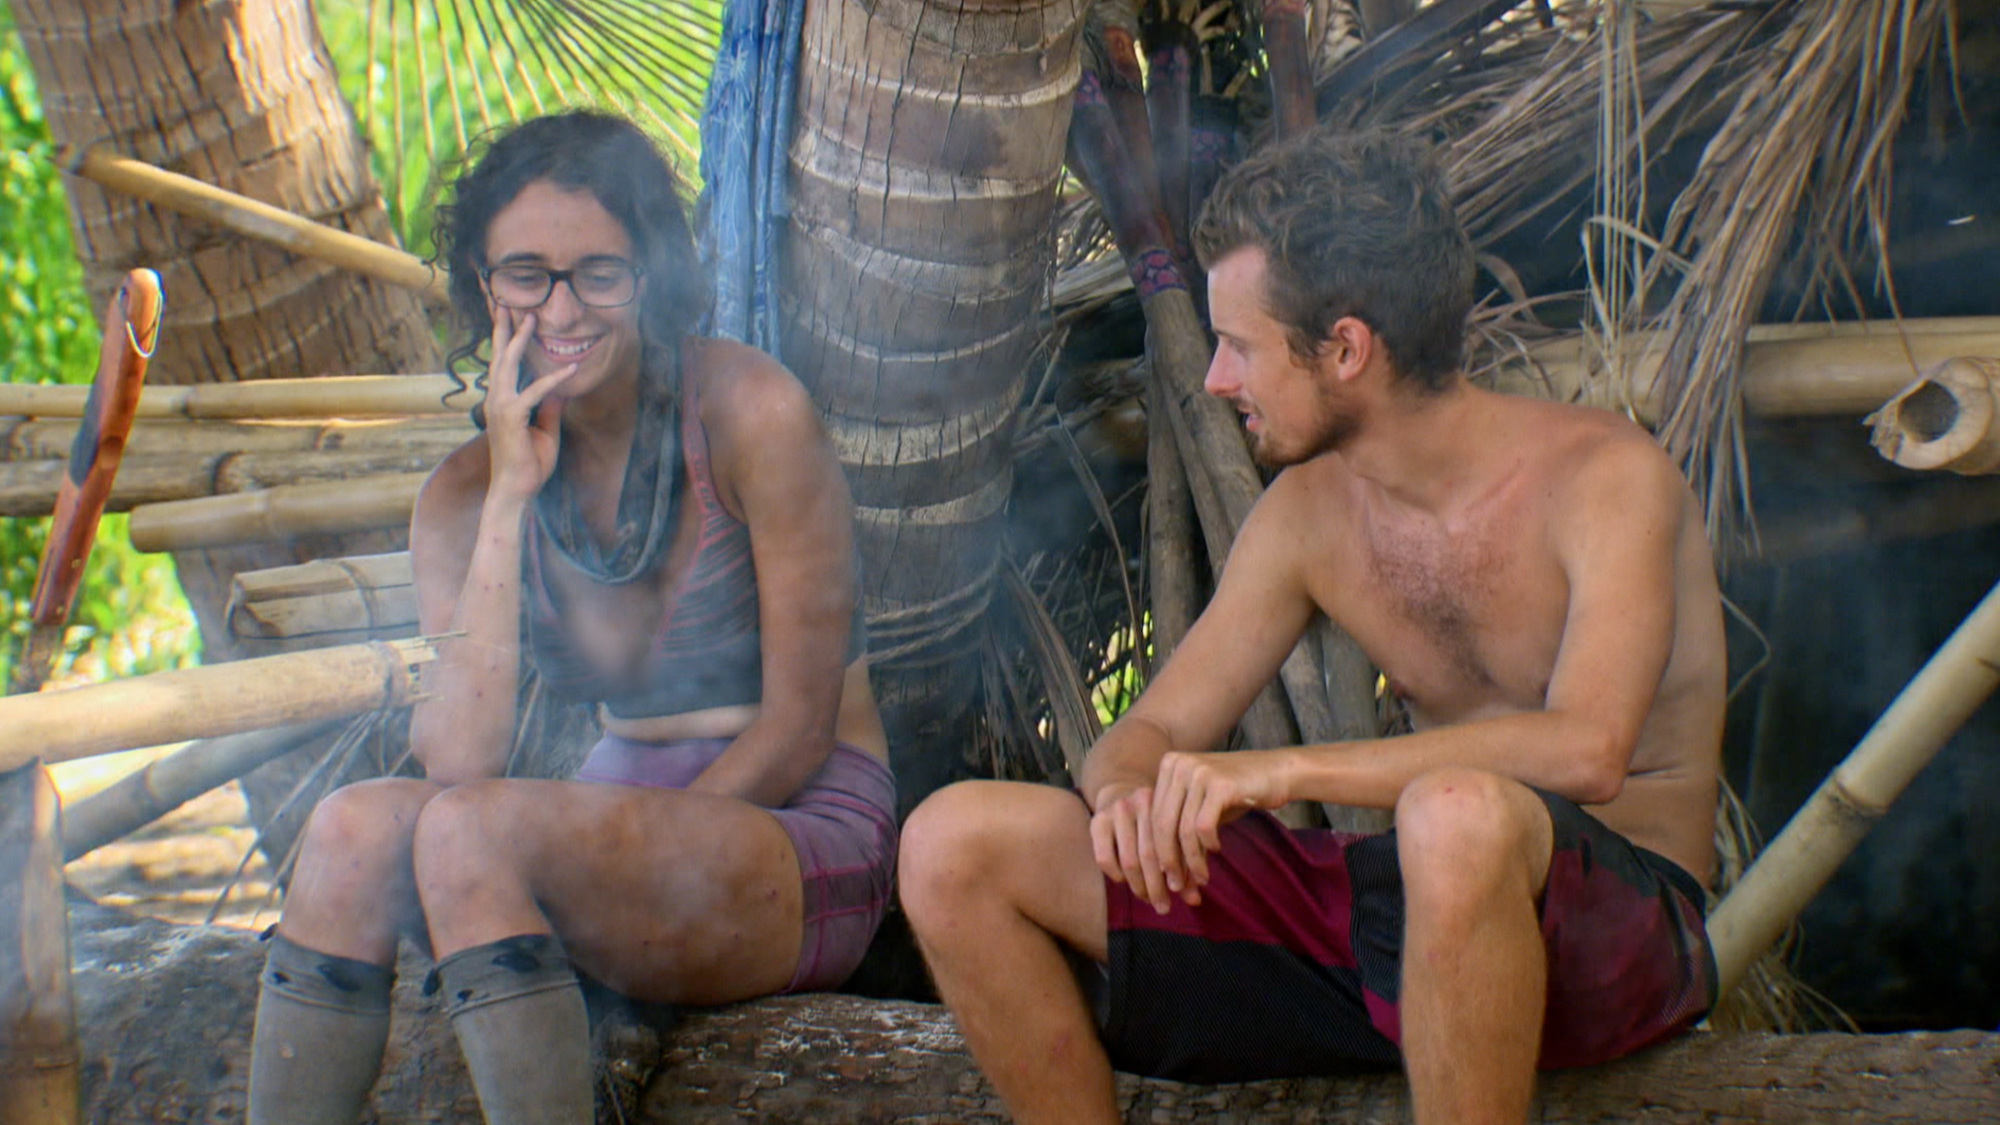 Hannah smiles as she shares a log with fellow Millennial Adam.